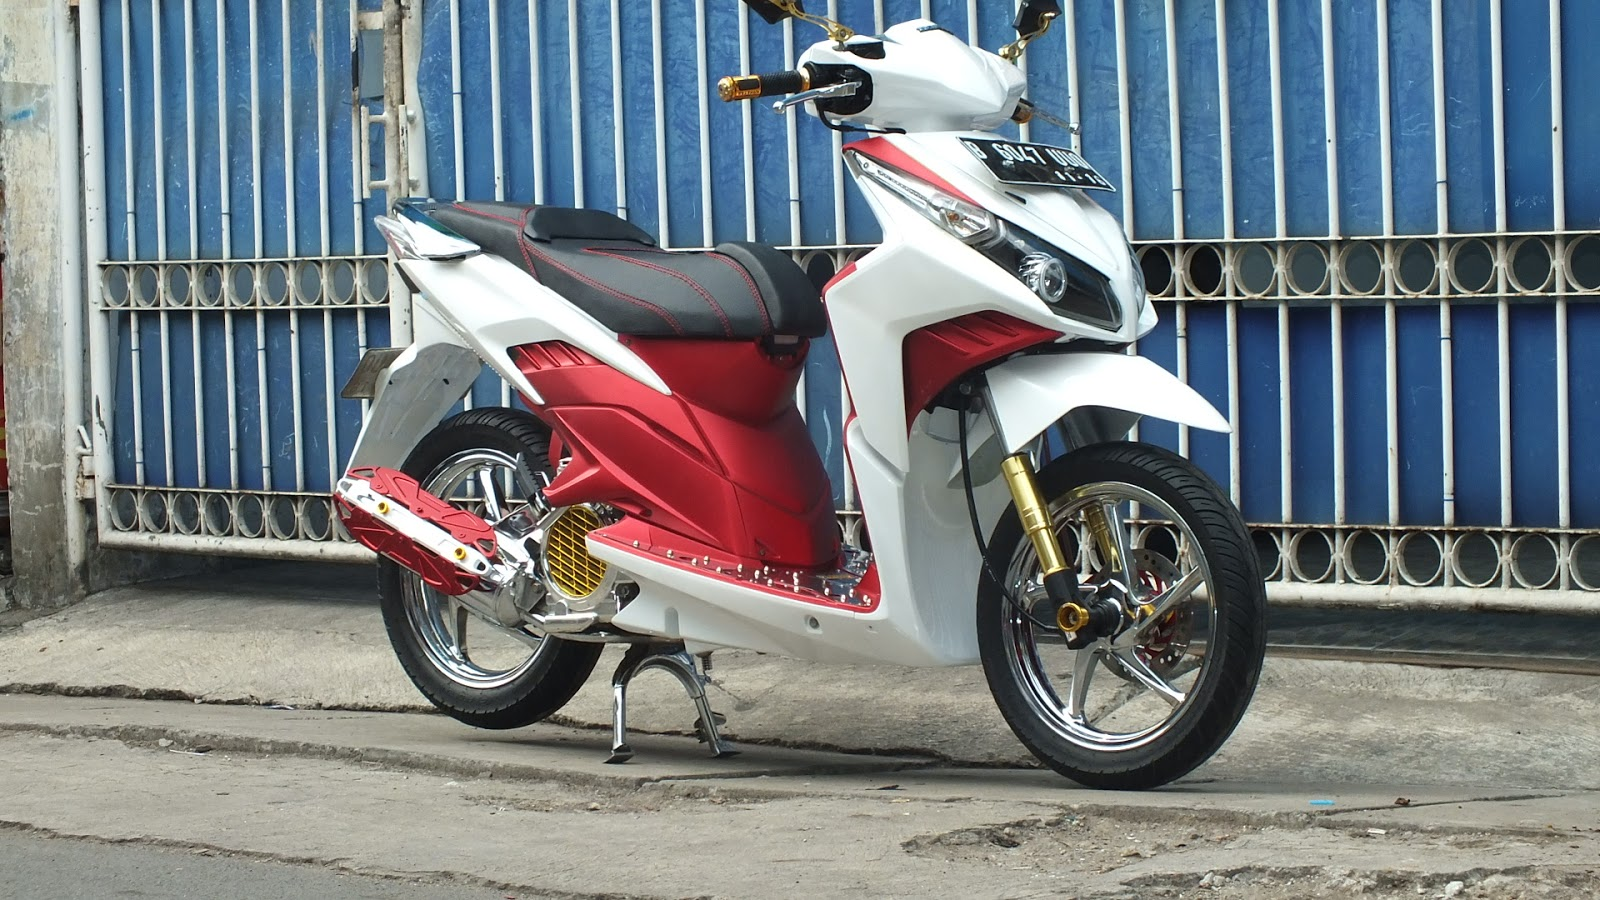 Modifikasi Vario Techno Putih Kumpulan Modifikasi Motor Vario